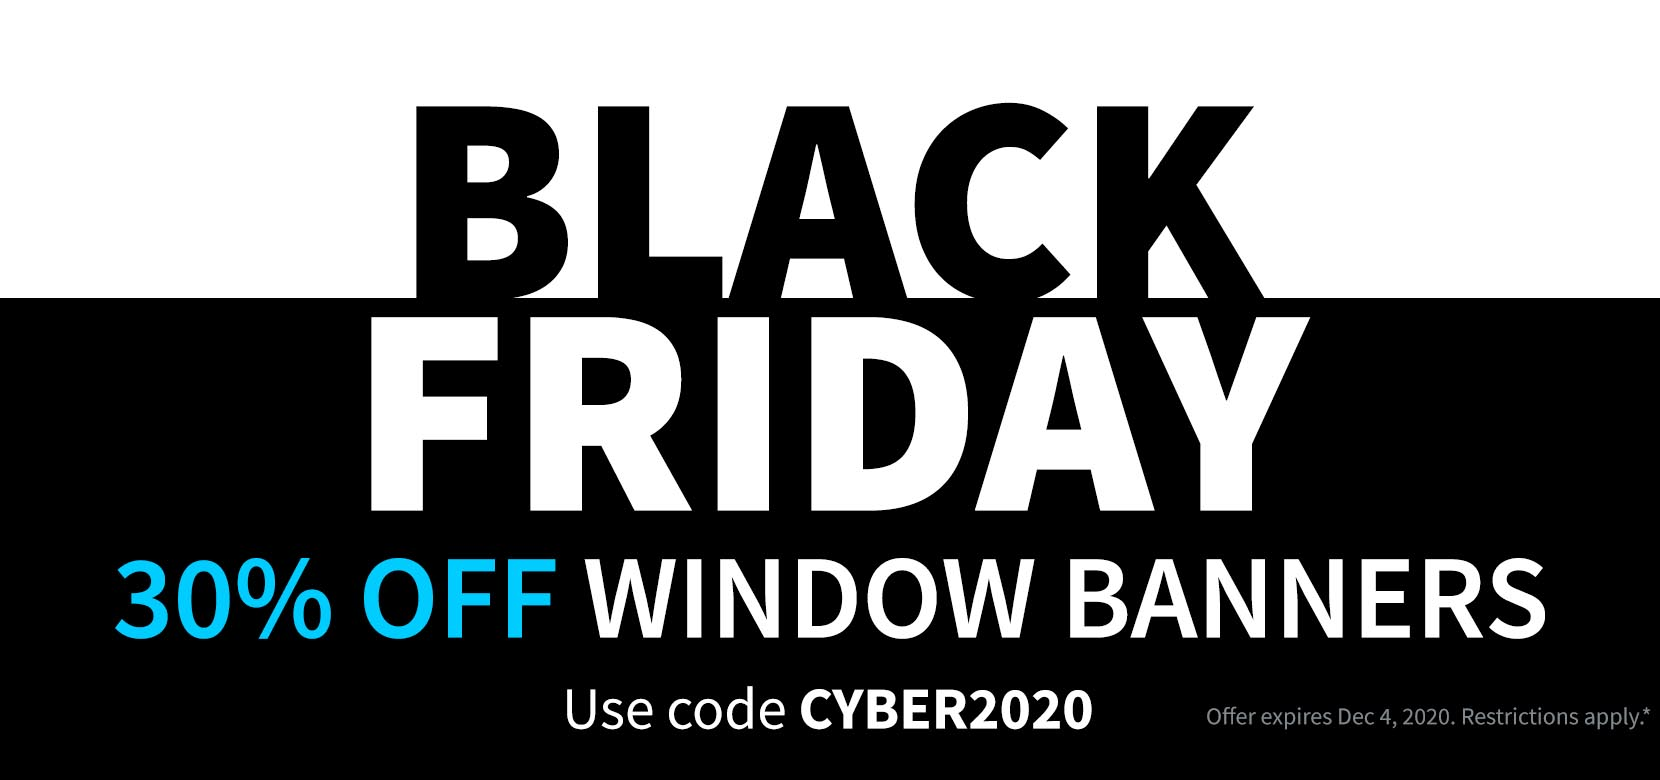 Black Friday CYBER2020 Window Banners